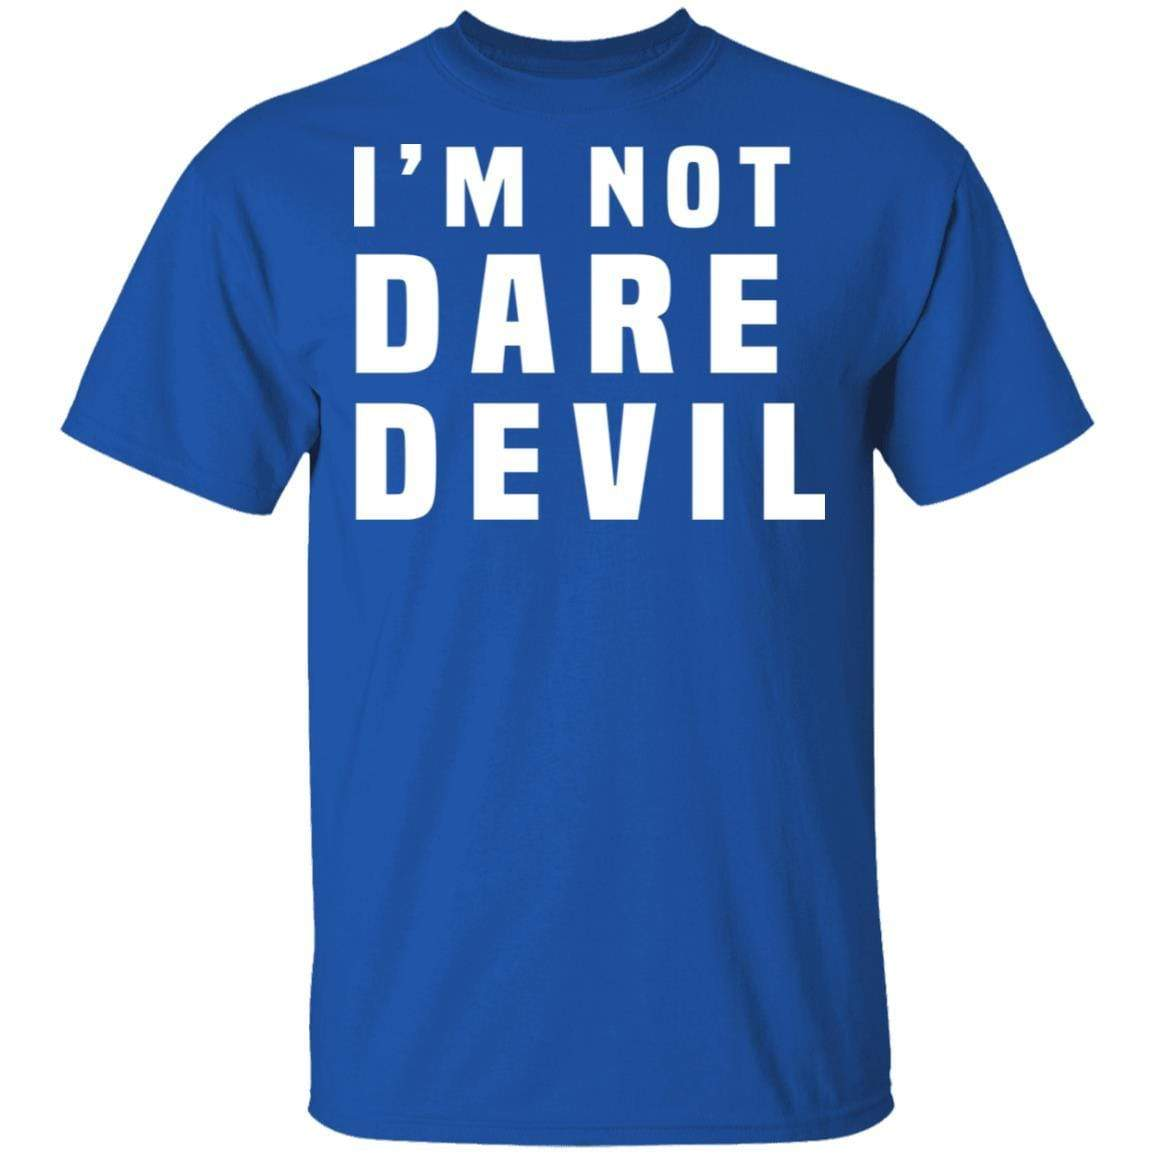 I'm Not Dare Devil T-Shirts, Hoodies 1049-9971-87589167-48286 - Tee Ript